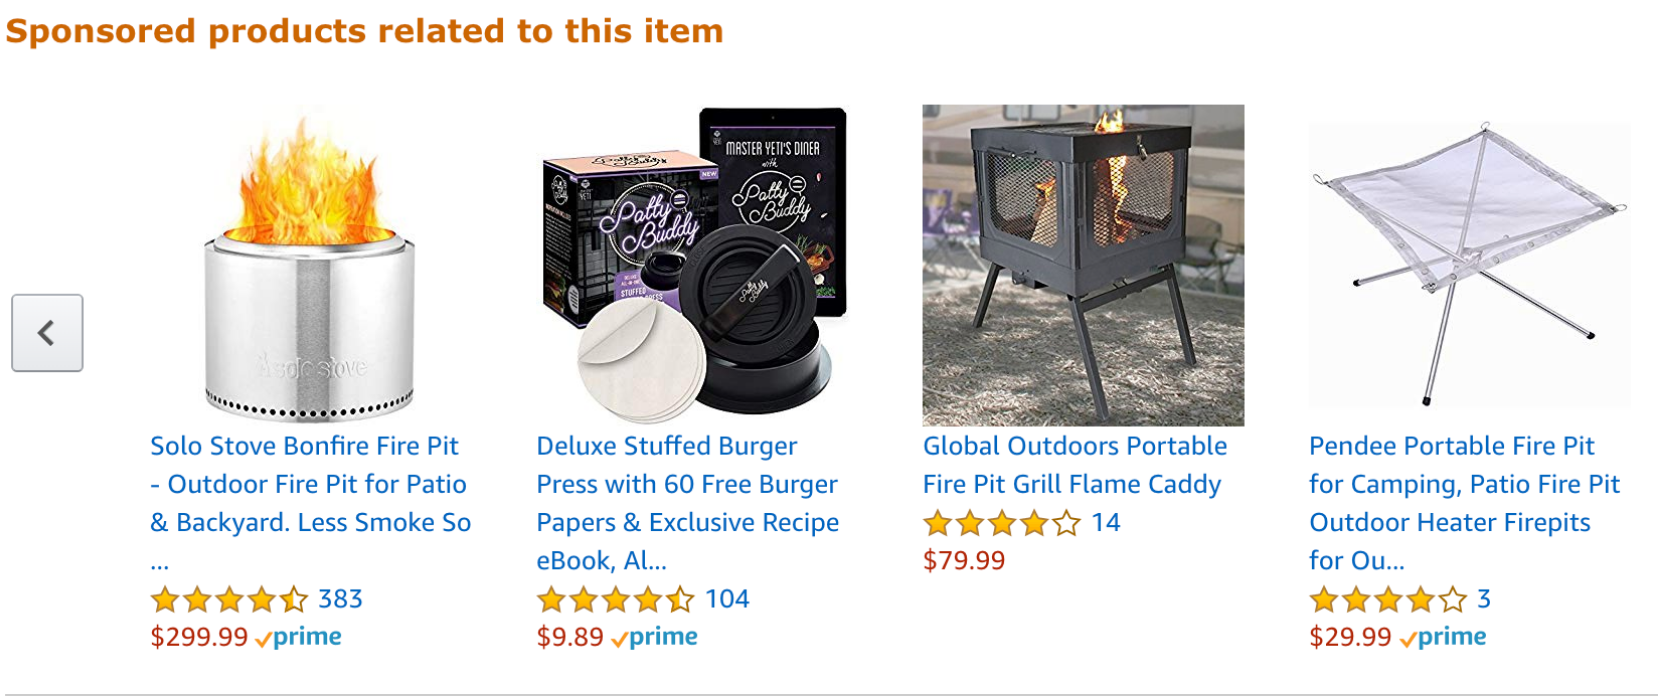 Amazon shows sponsored products on product pages as well